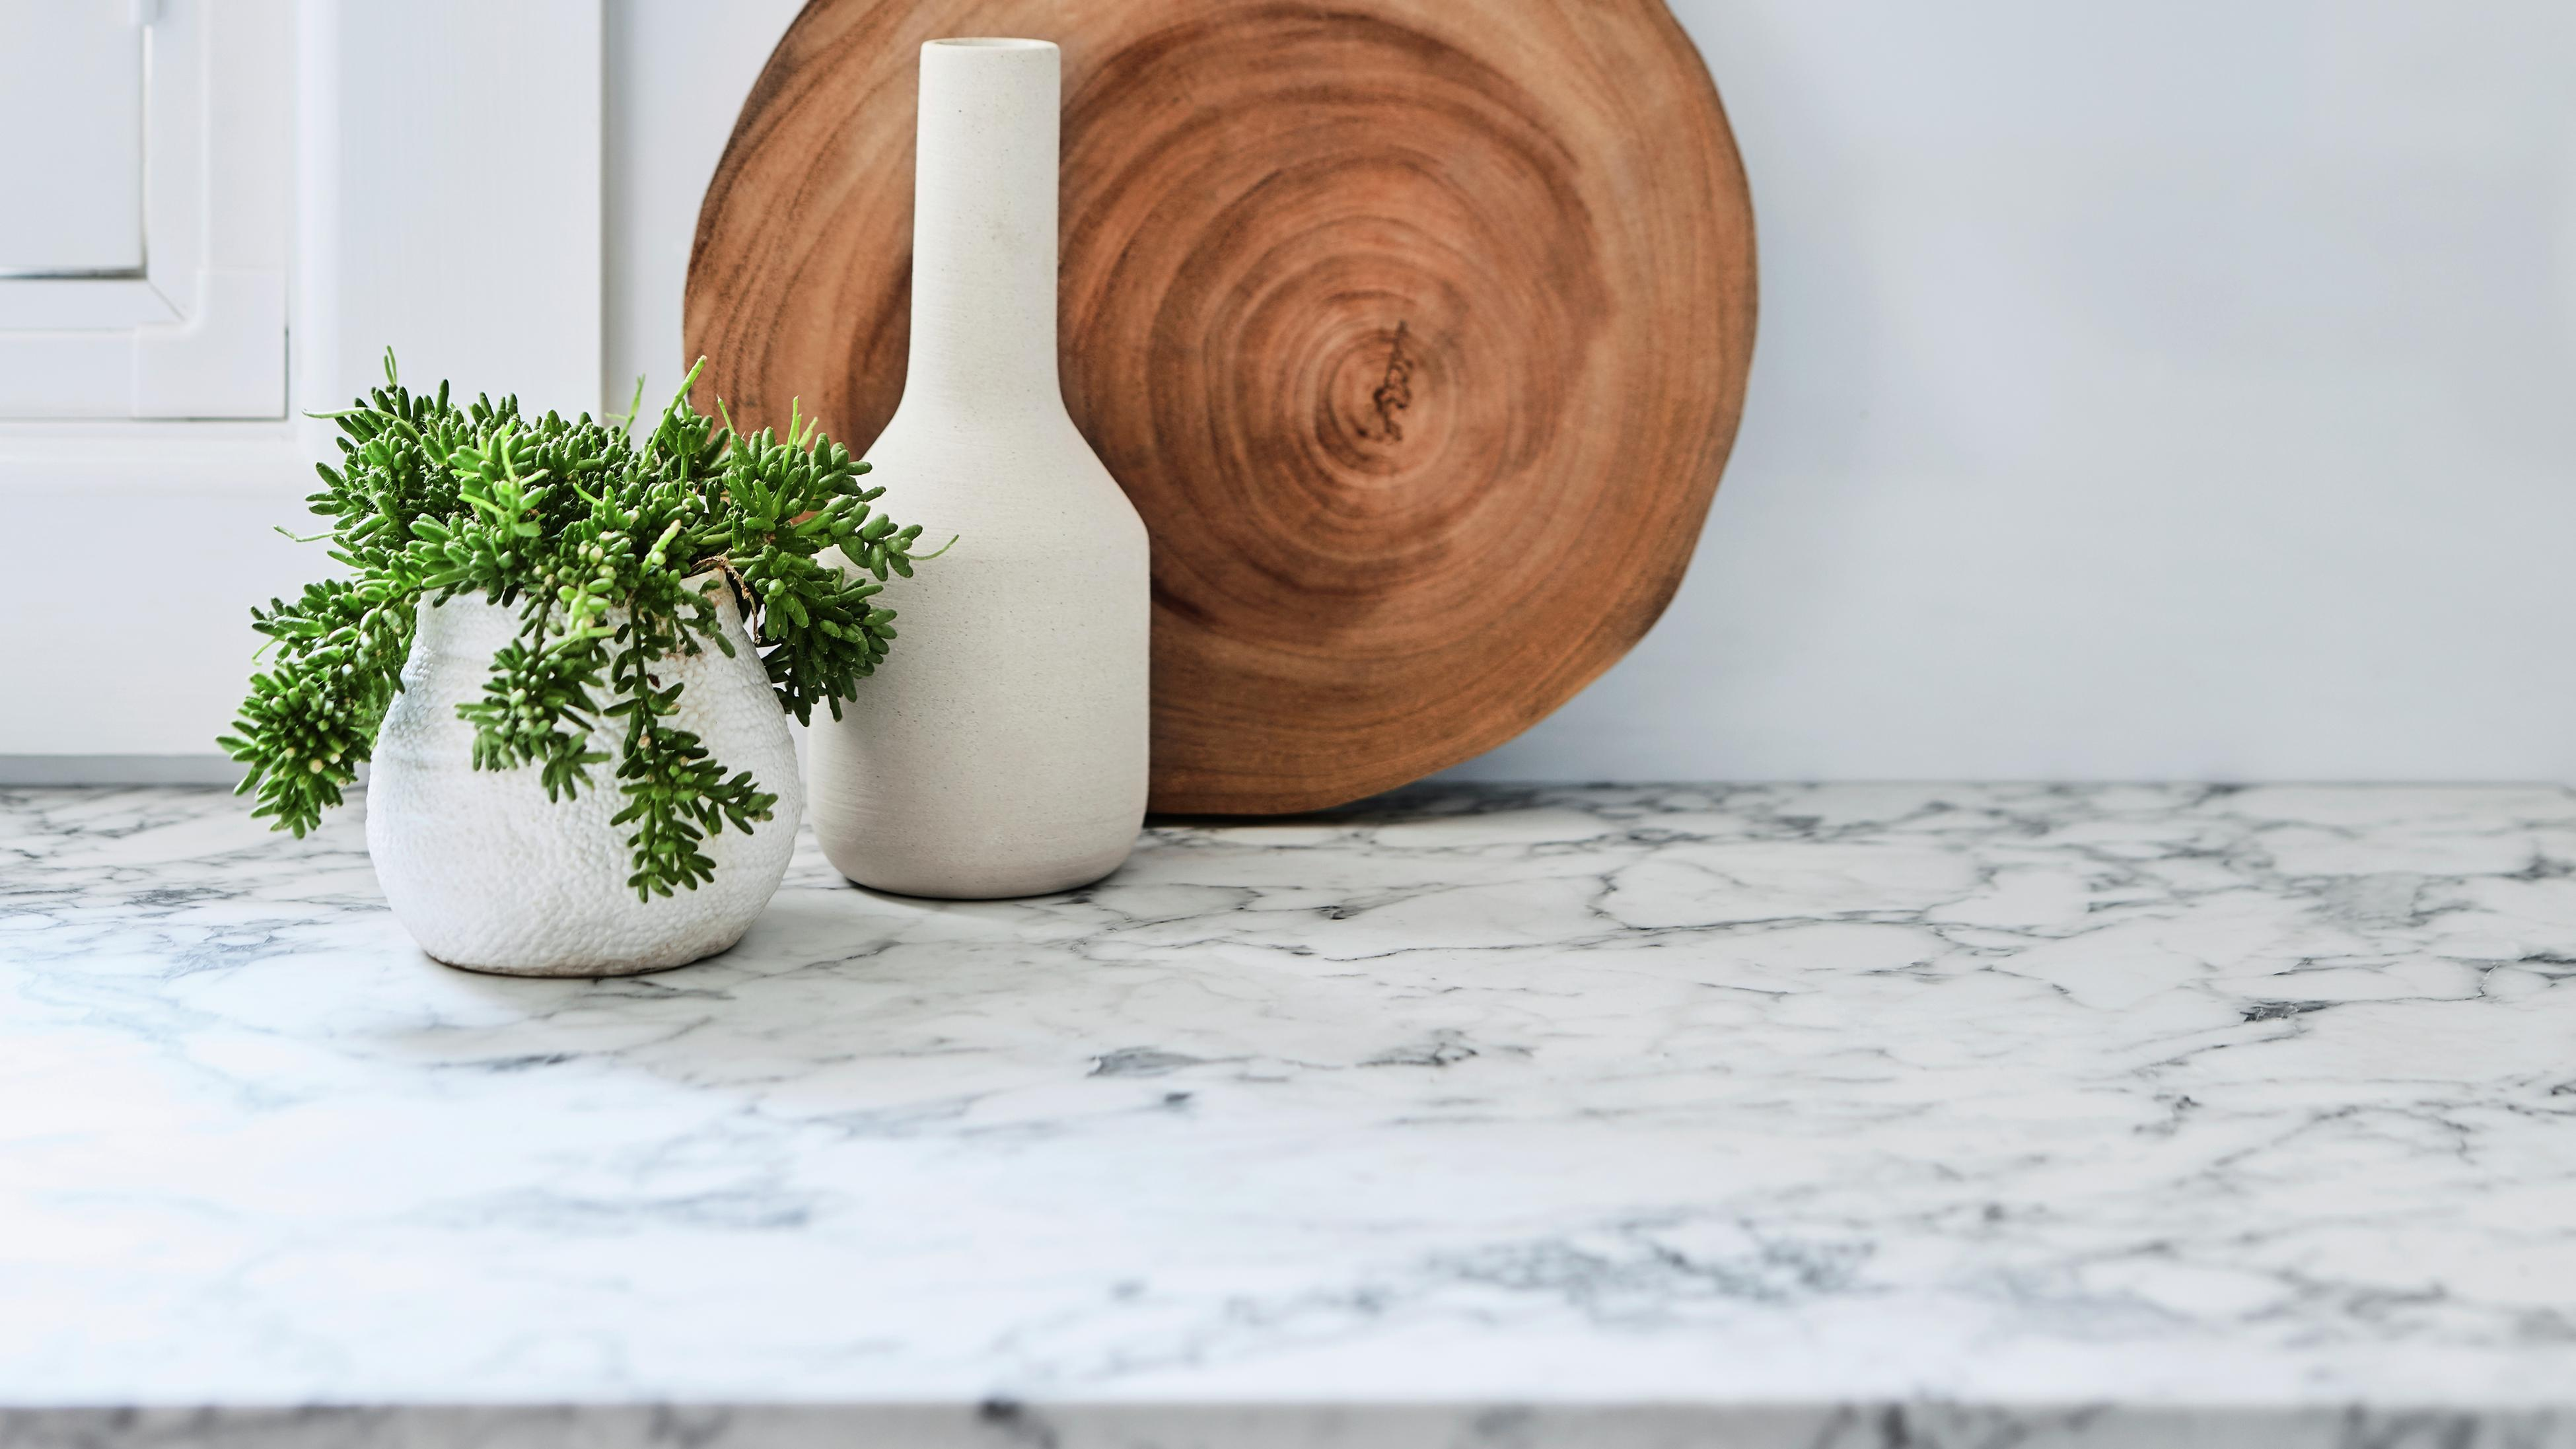 Marble benchtop with wooden chopping board and plants.